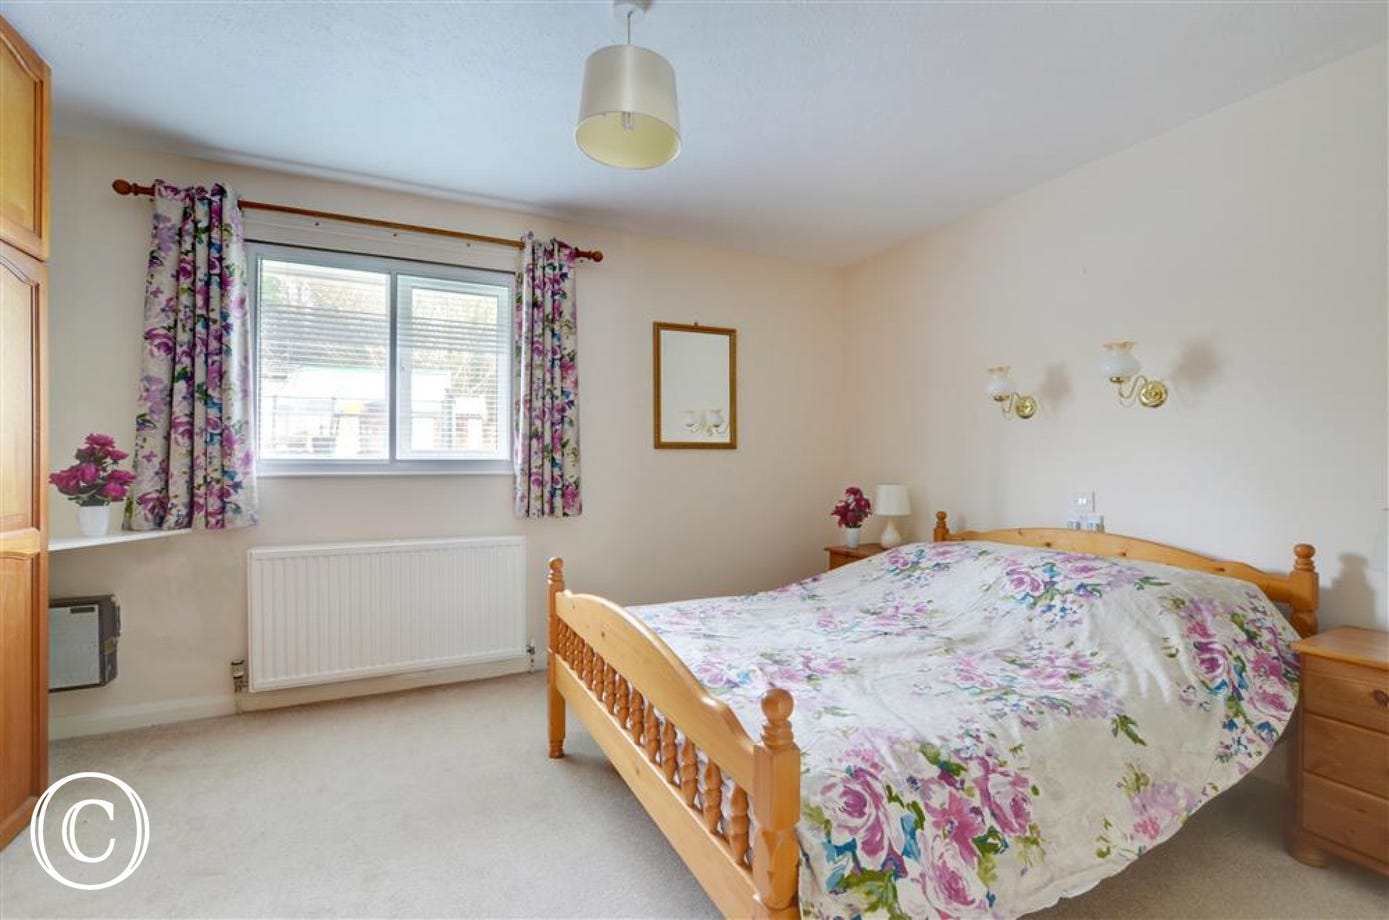 The spacious master bedroom looks over the garden